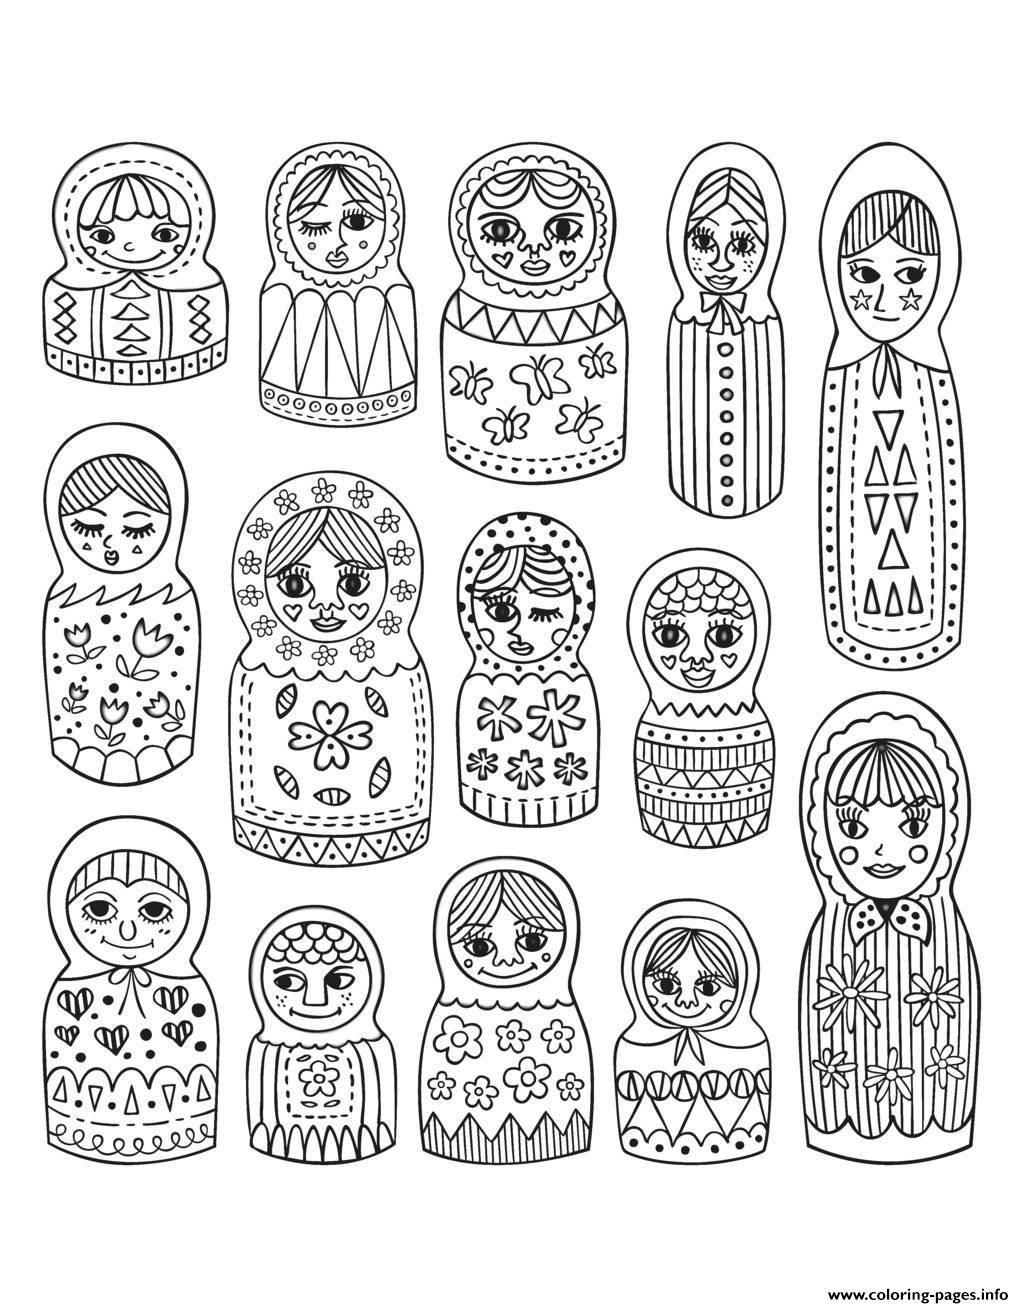 Print adult cute russian dolls Coloring pages